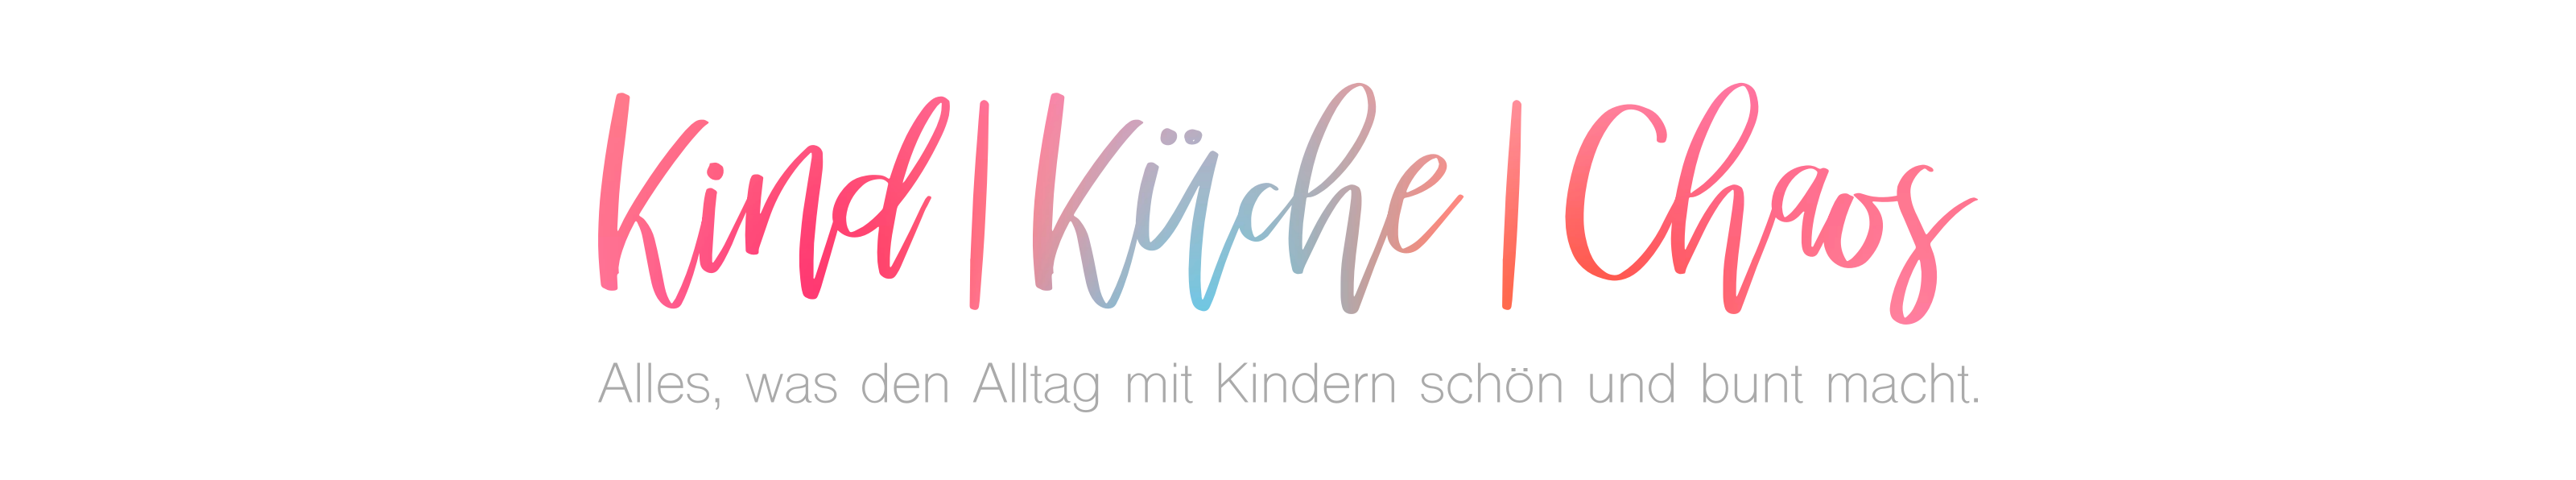 Kind | Küche | Chaos